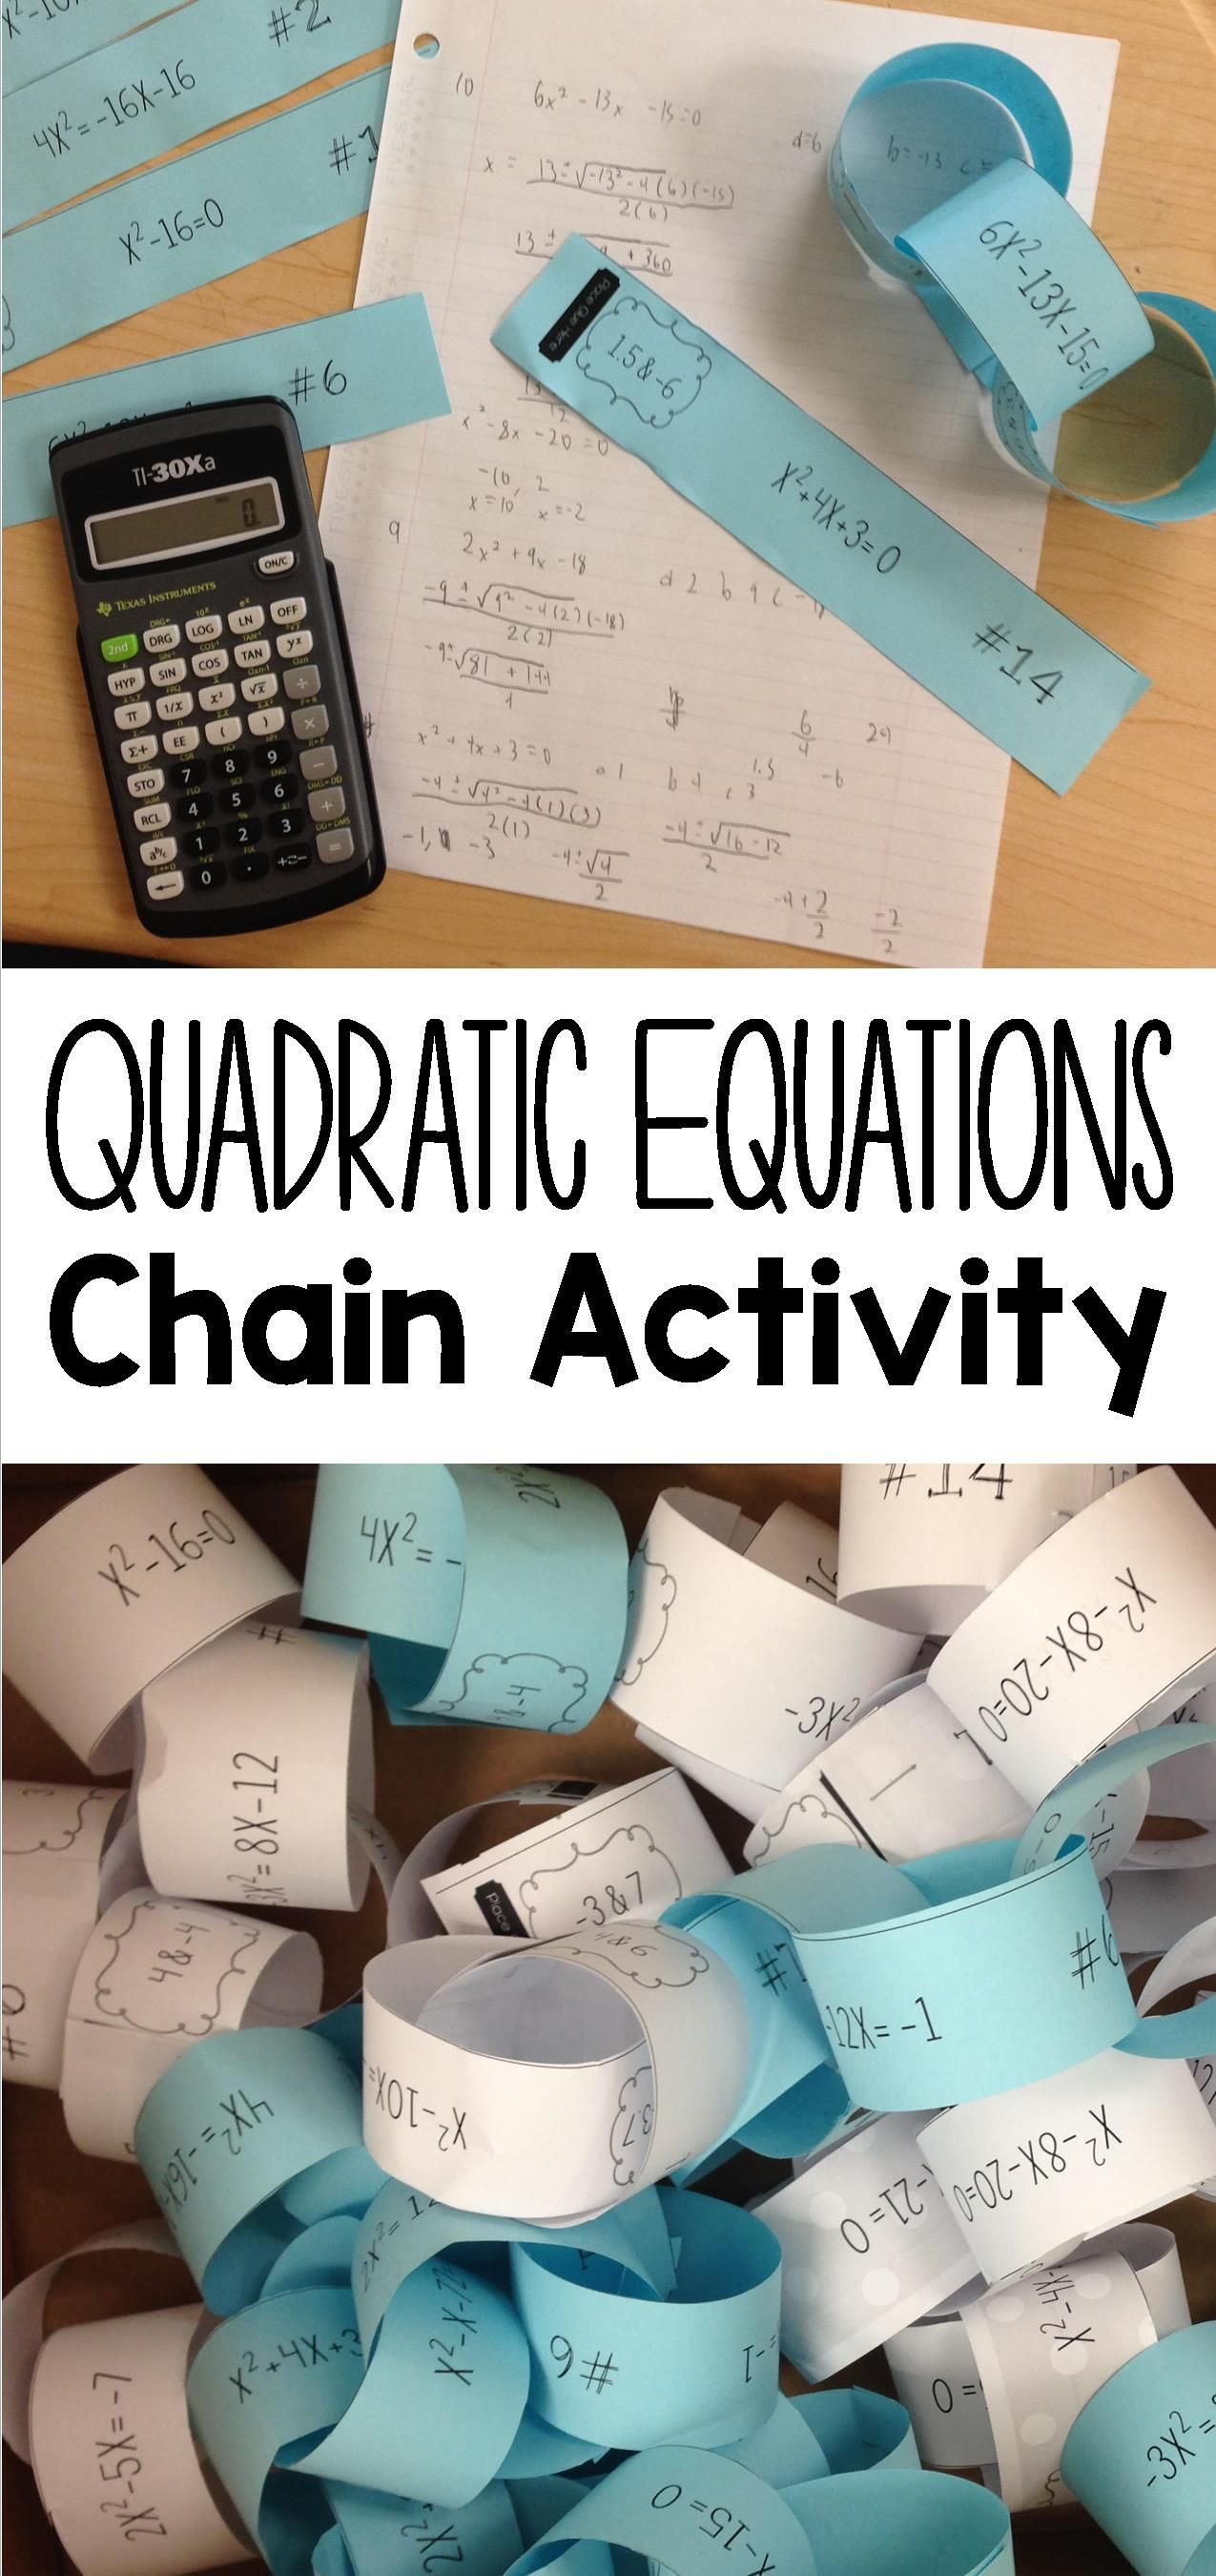 solving quadratic equations paper chain activity | math class